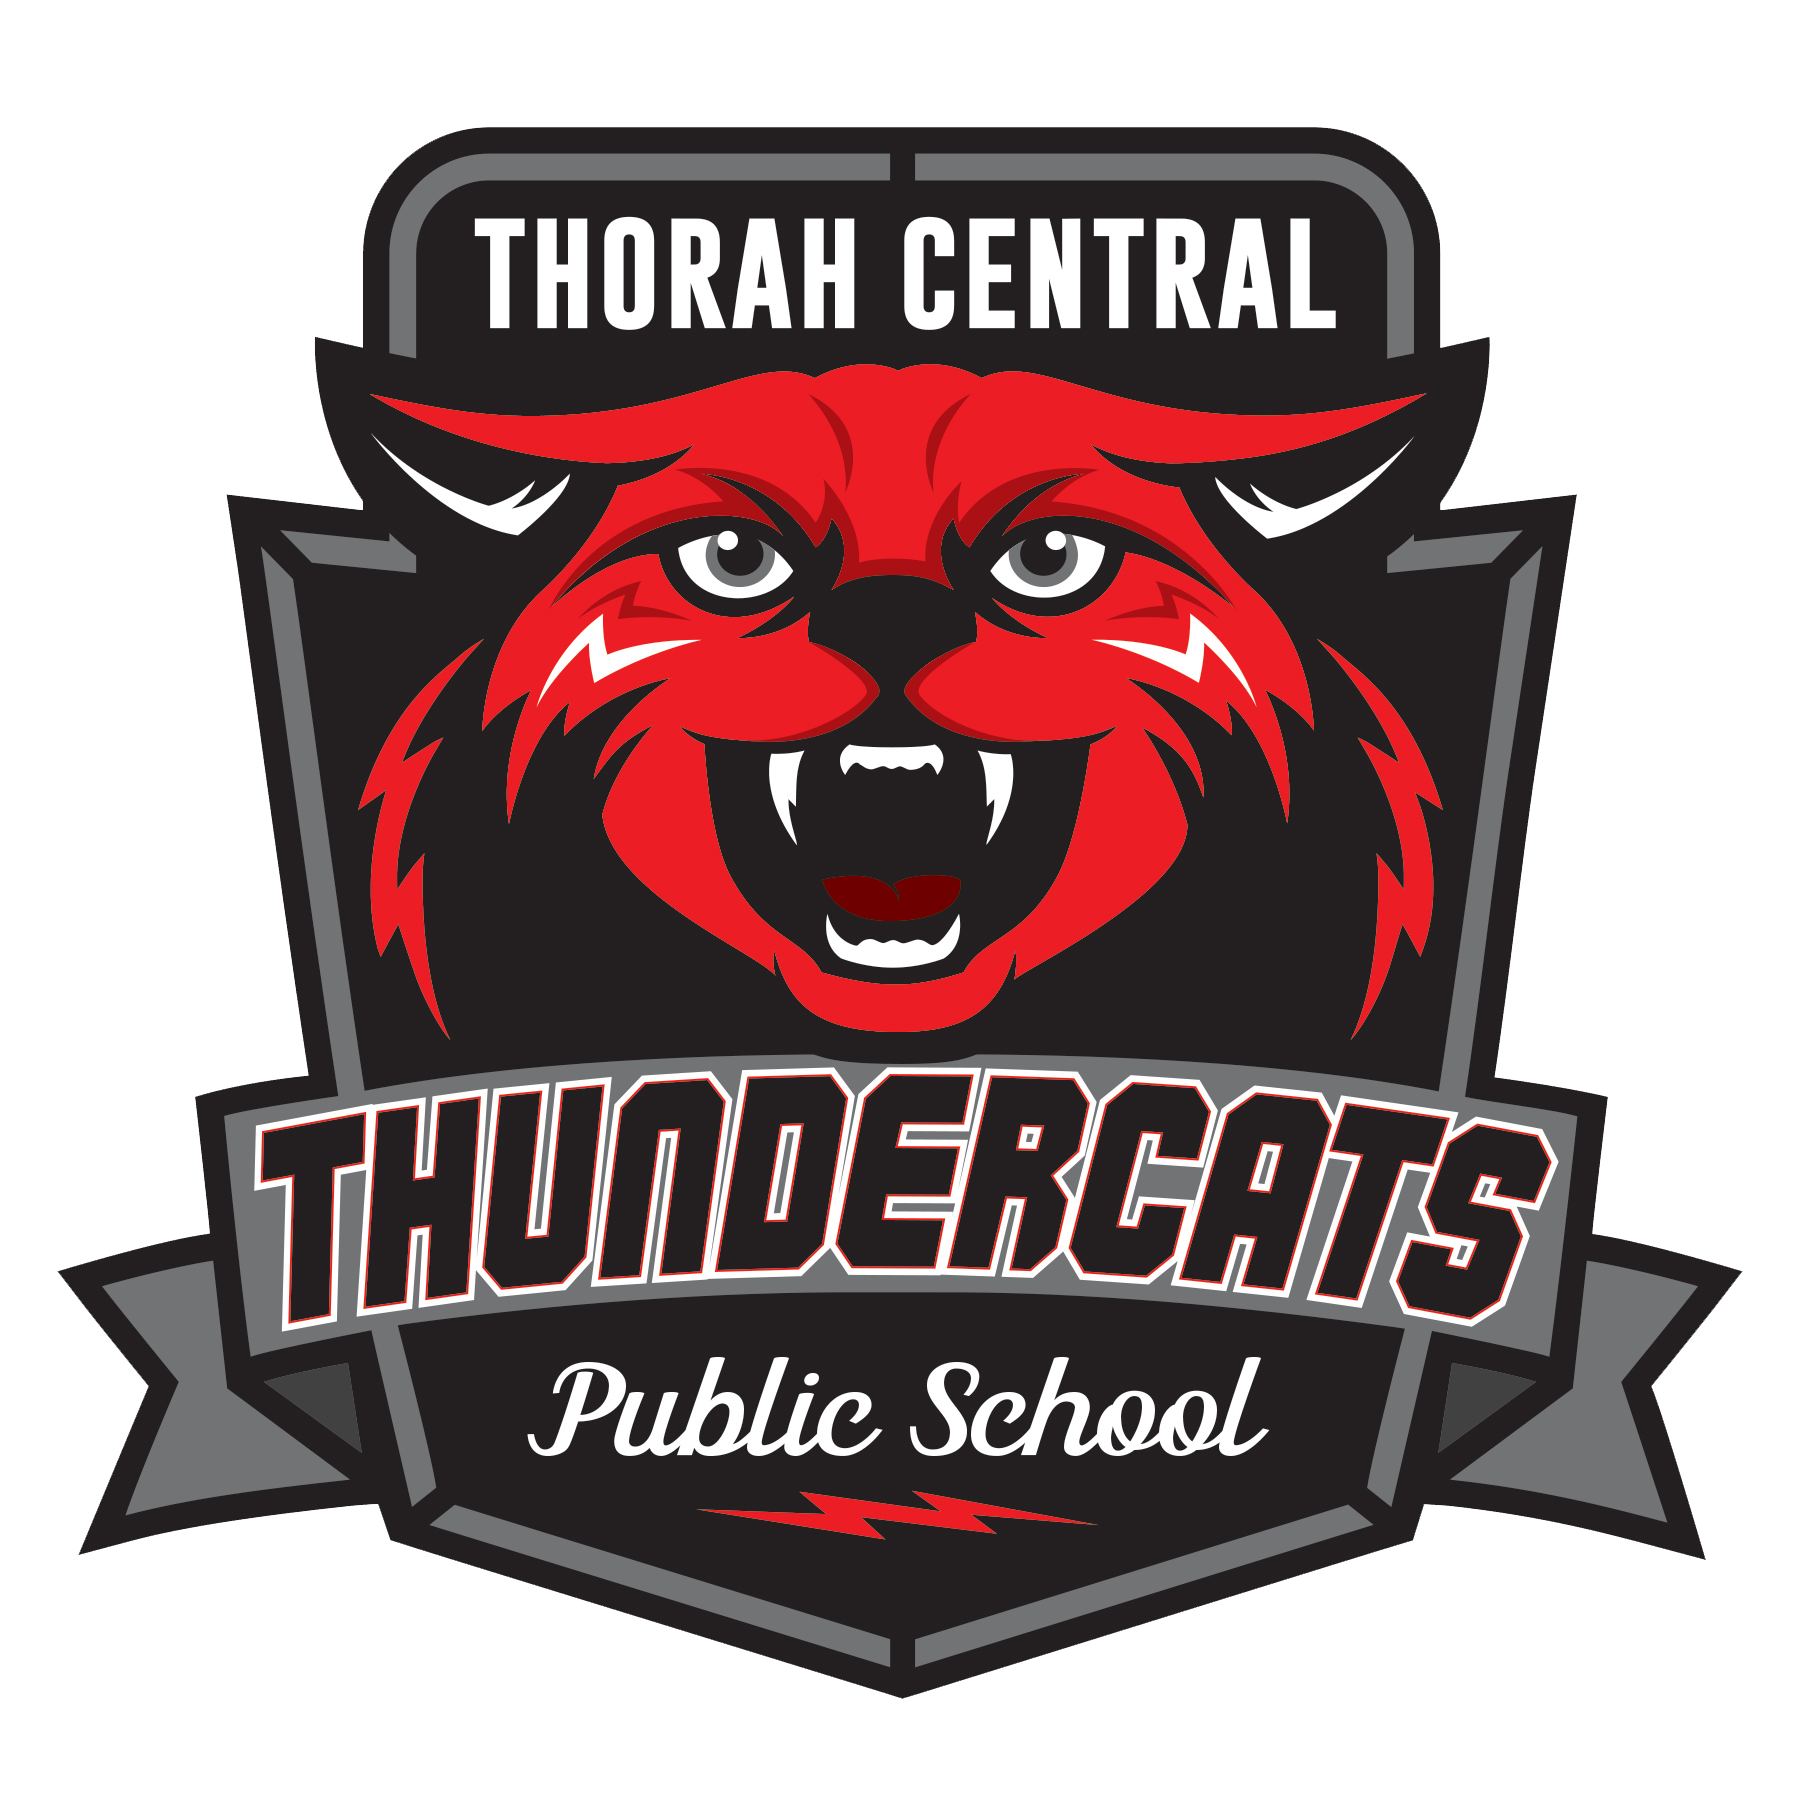 Thorah Central Public School logo